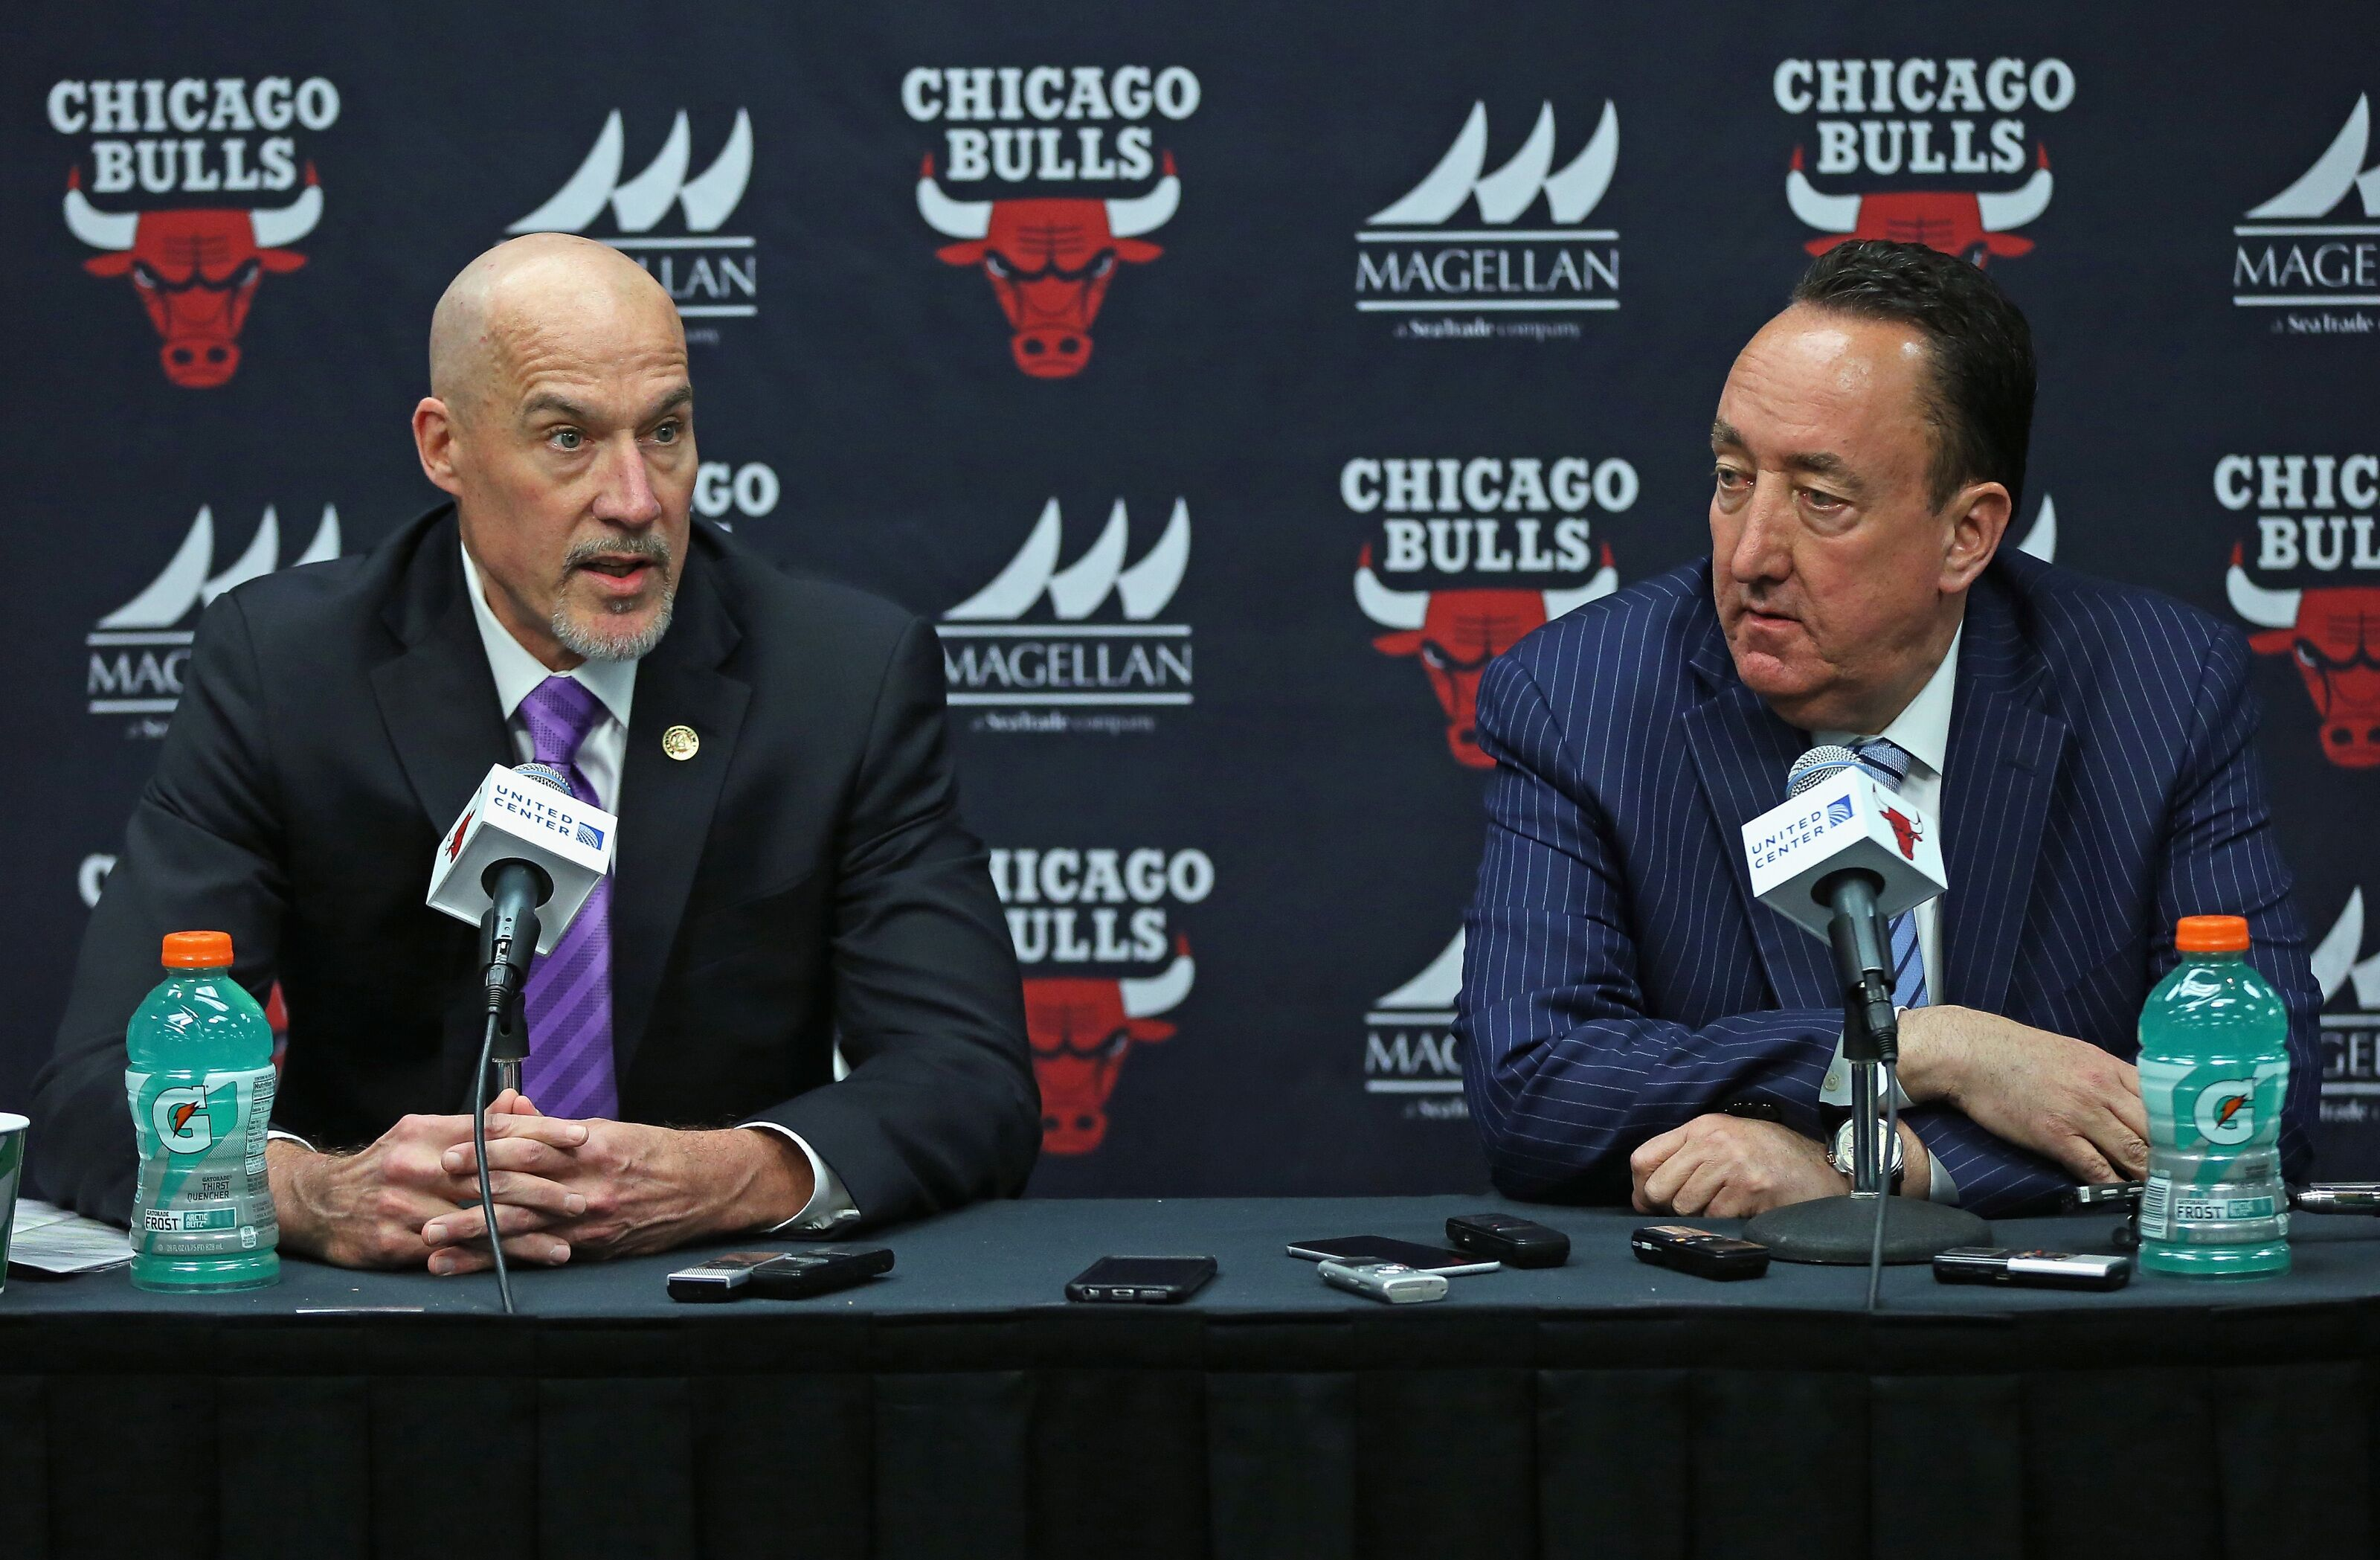 Chicago Bulls: Biggest NBA Draft misses since their last championship